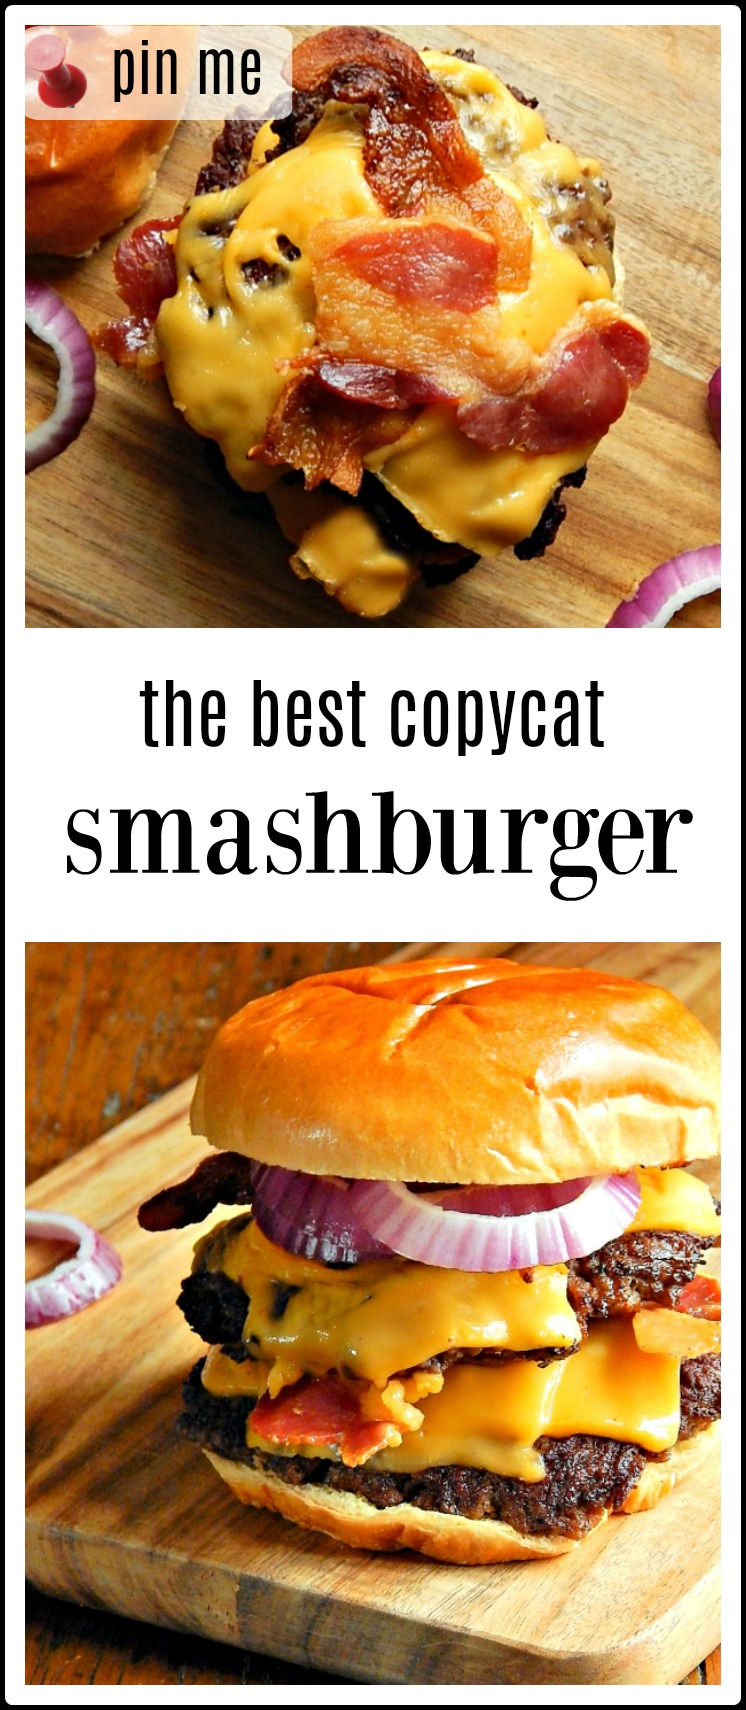 Copycat Smashburgers Home Style If you love crusty, juicy griddled Smashburgers, you're going to love making them using this easy, no mess recipe. Everyone will rave! #Copycat Smashburgers #Smashburger Recipe #EasyNoMessSmashburgersHome #HomemadeSmashburgers